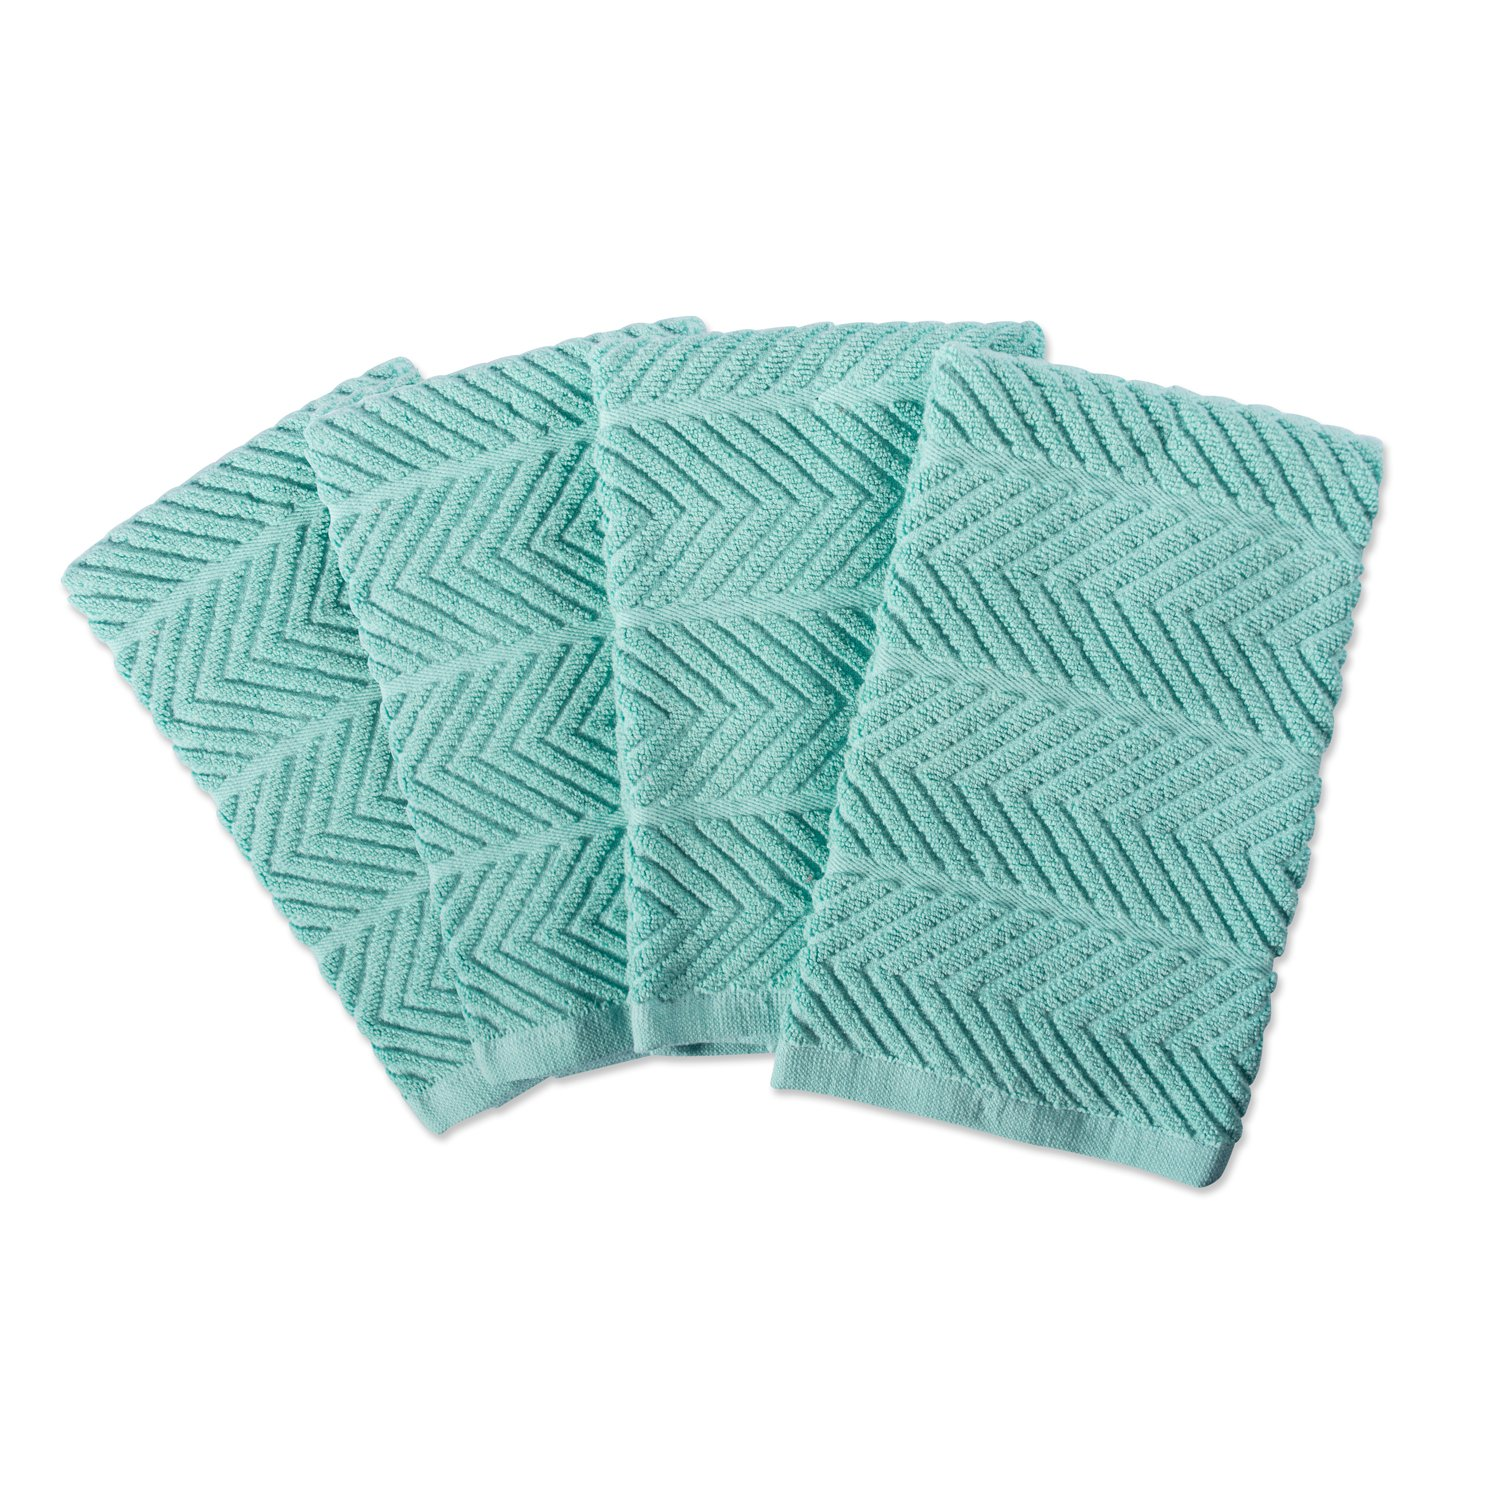 DII 100% Cotton Ultra-Absorbent Cleaning Drying Luxury Kitchen Chevron Bar Mop Dish Towels for Everyday Home Basic 16 x 19 Set of 4- Aqua